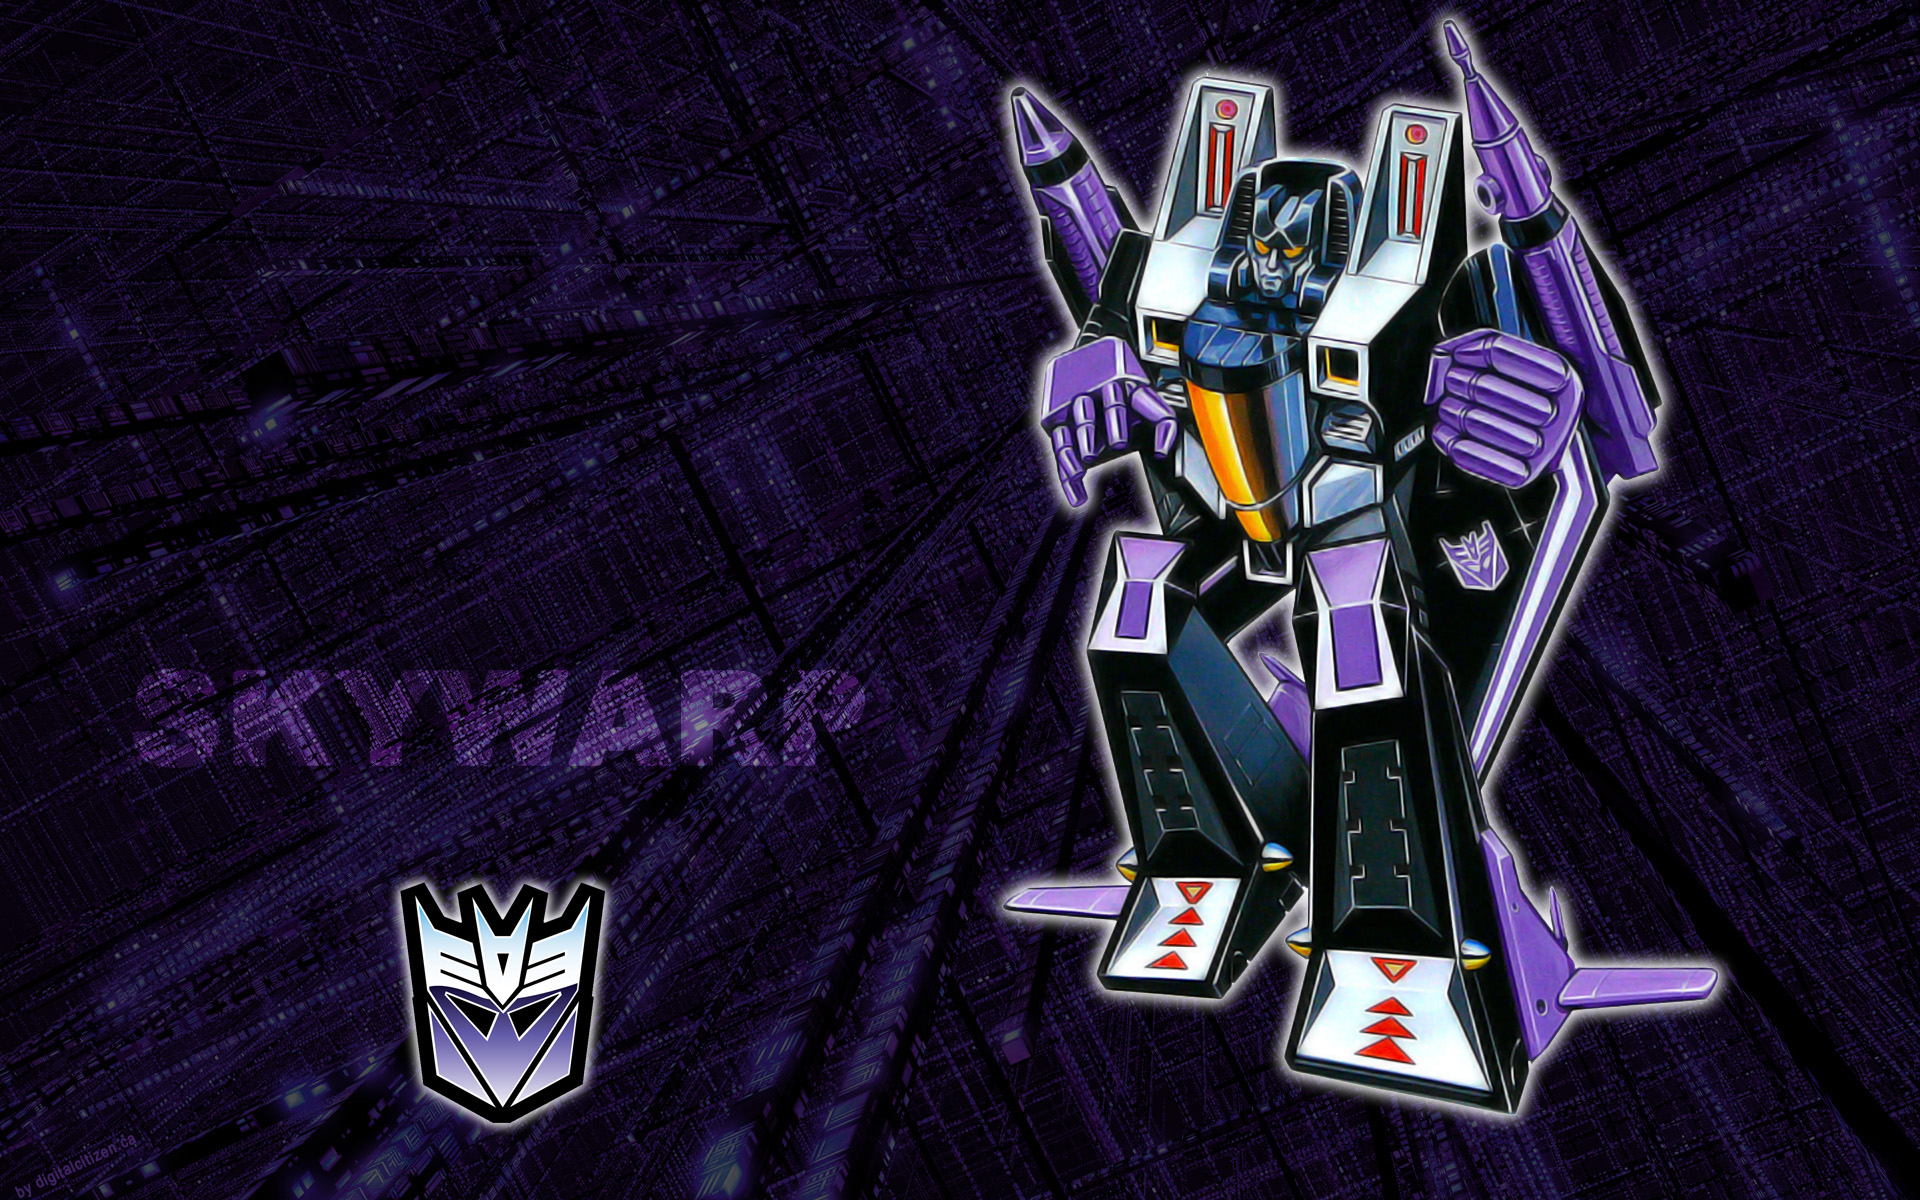 Wallpapers Hd Hello Kitty G1 Decepticons Wallpaper Gallery 6 1920 X 1200 Pixels